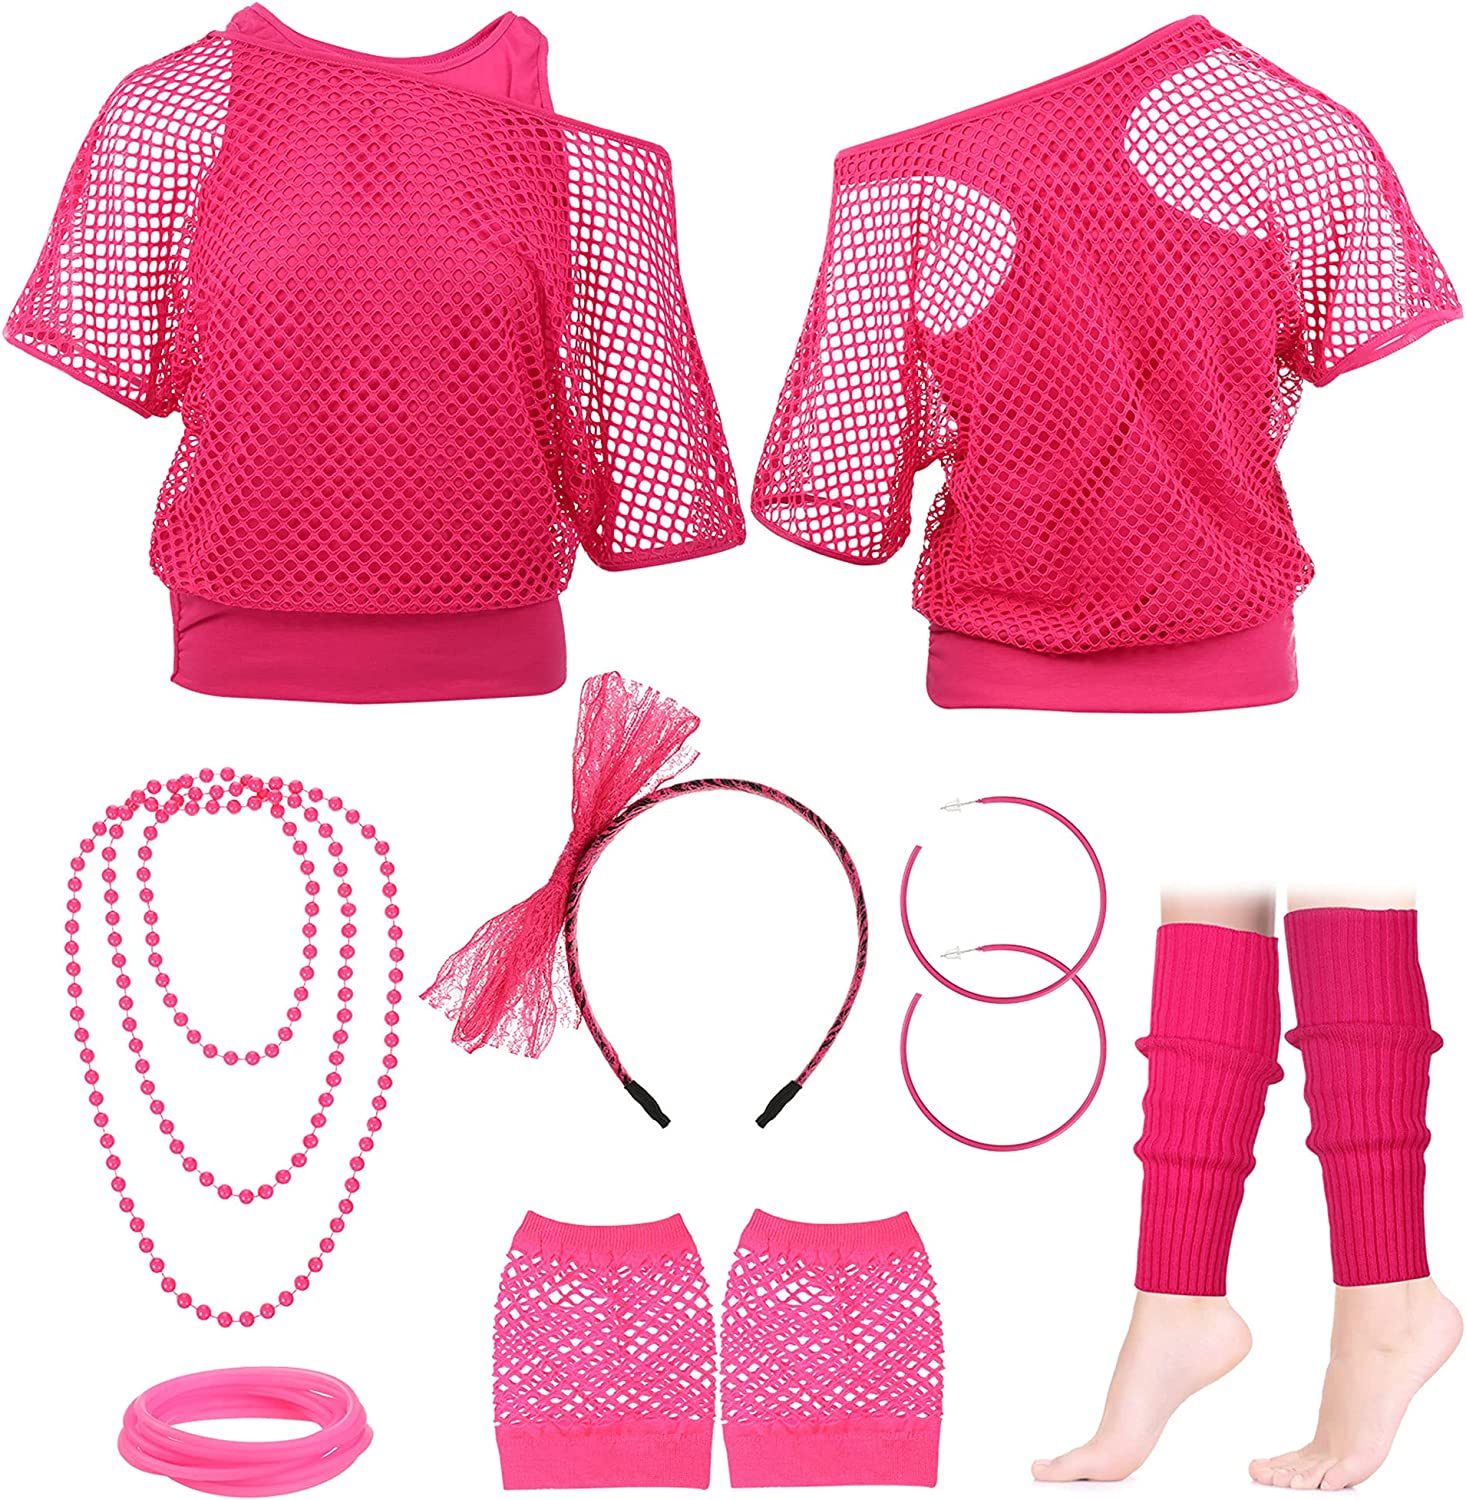 Ficerd 80s Outfit Costume Accessory National products Max 70% OFF Headband Earring Fishnet Glo